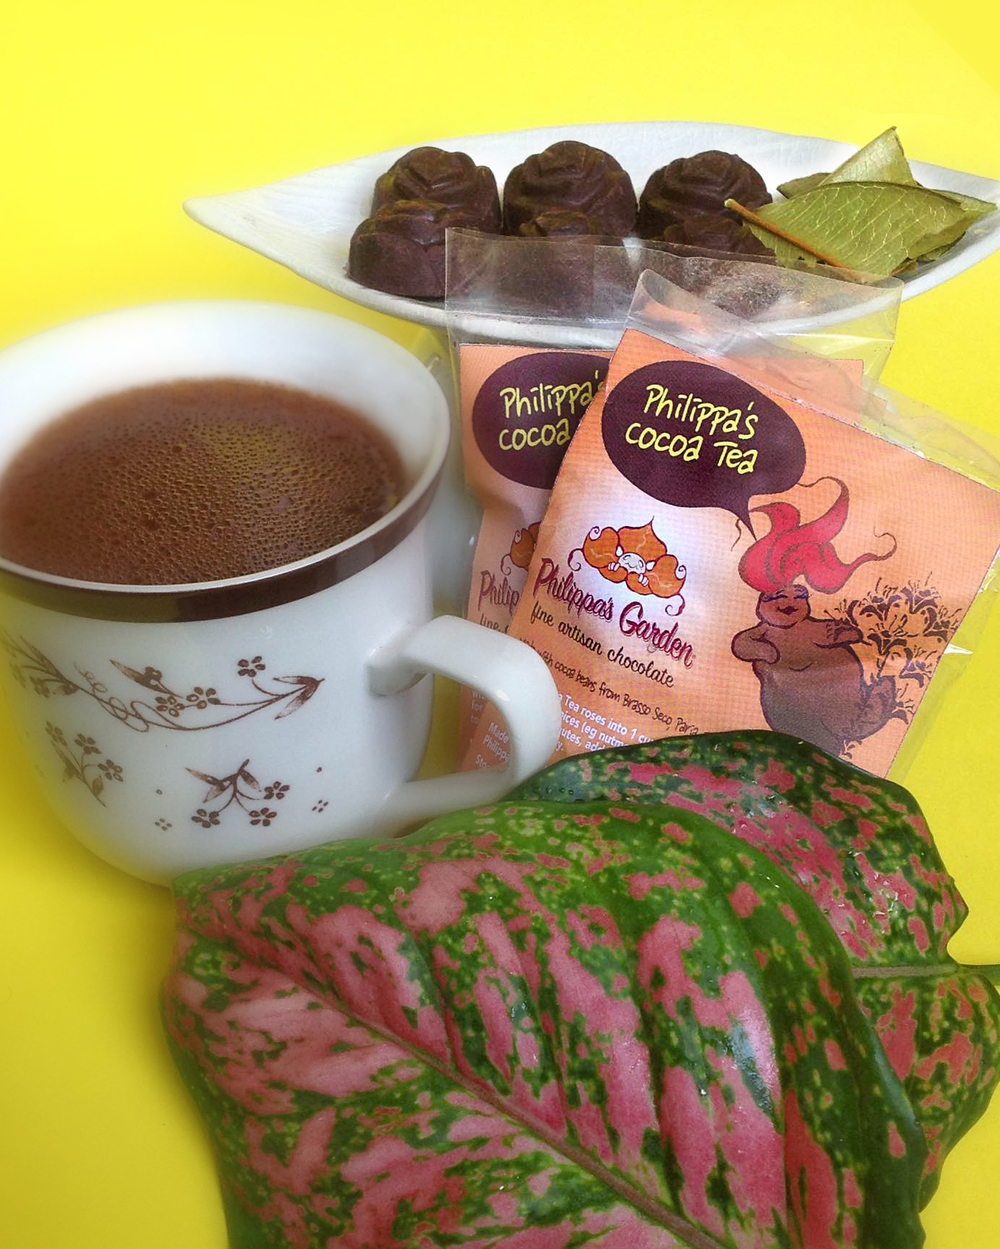 PHILIPPA'S COCOA TEA (CREOLE COCOA)   Our traditional Cocoa Tea roses are 100% roasted and ground trinitario cocoa beans. Cuddle up with a cup on a rainy day or grate a little into your coffee for a unique flavour.  Grate 2 Cocoa Tea roses into a cup of boiling water with optional spices (e.g. nutmeg or bay leaf) for at least 5 minutes, add condensed milk to taste and enjoy.